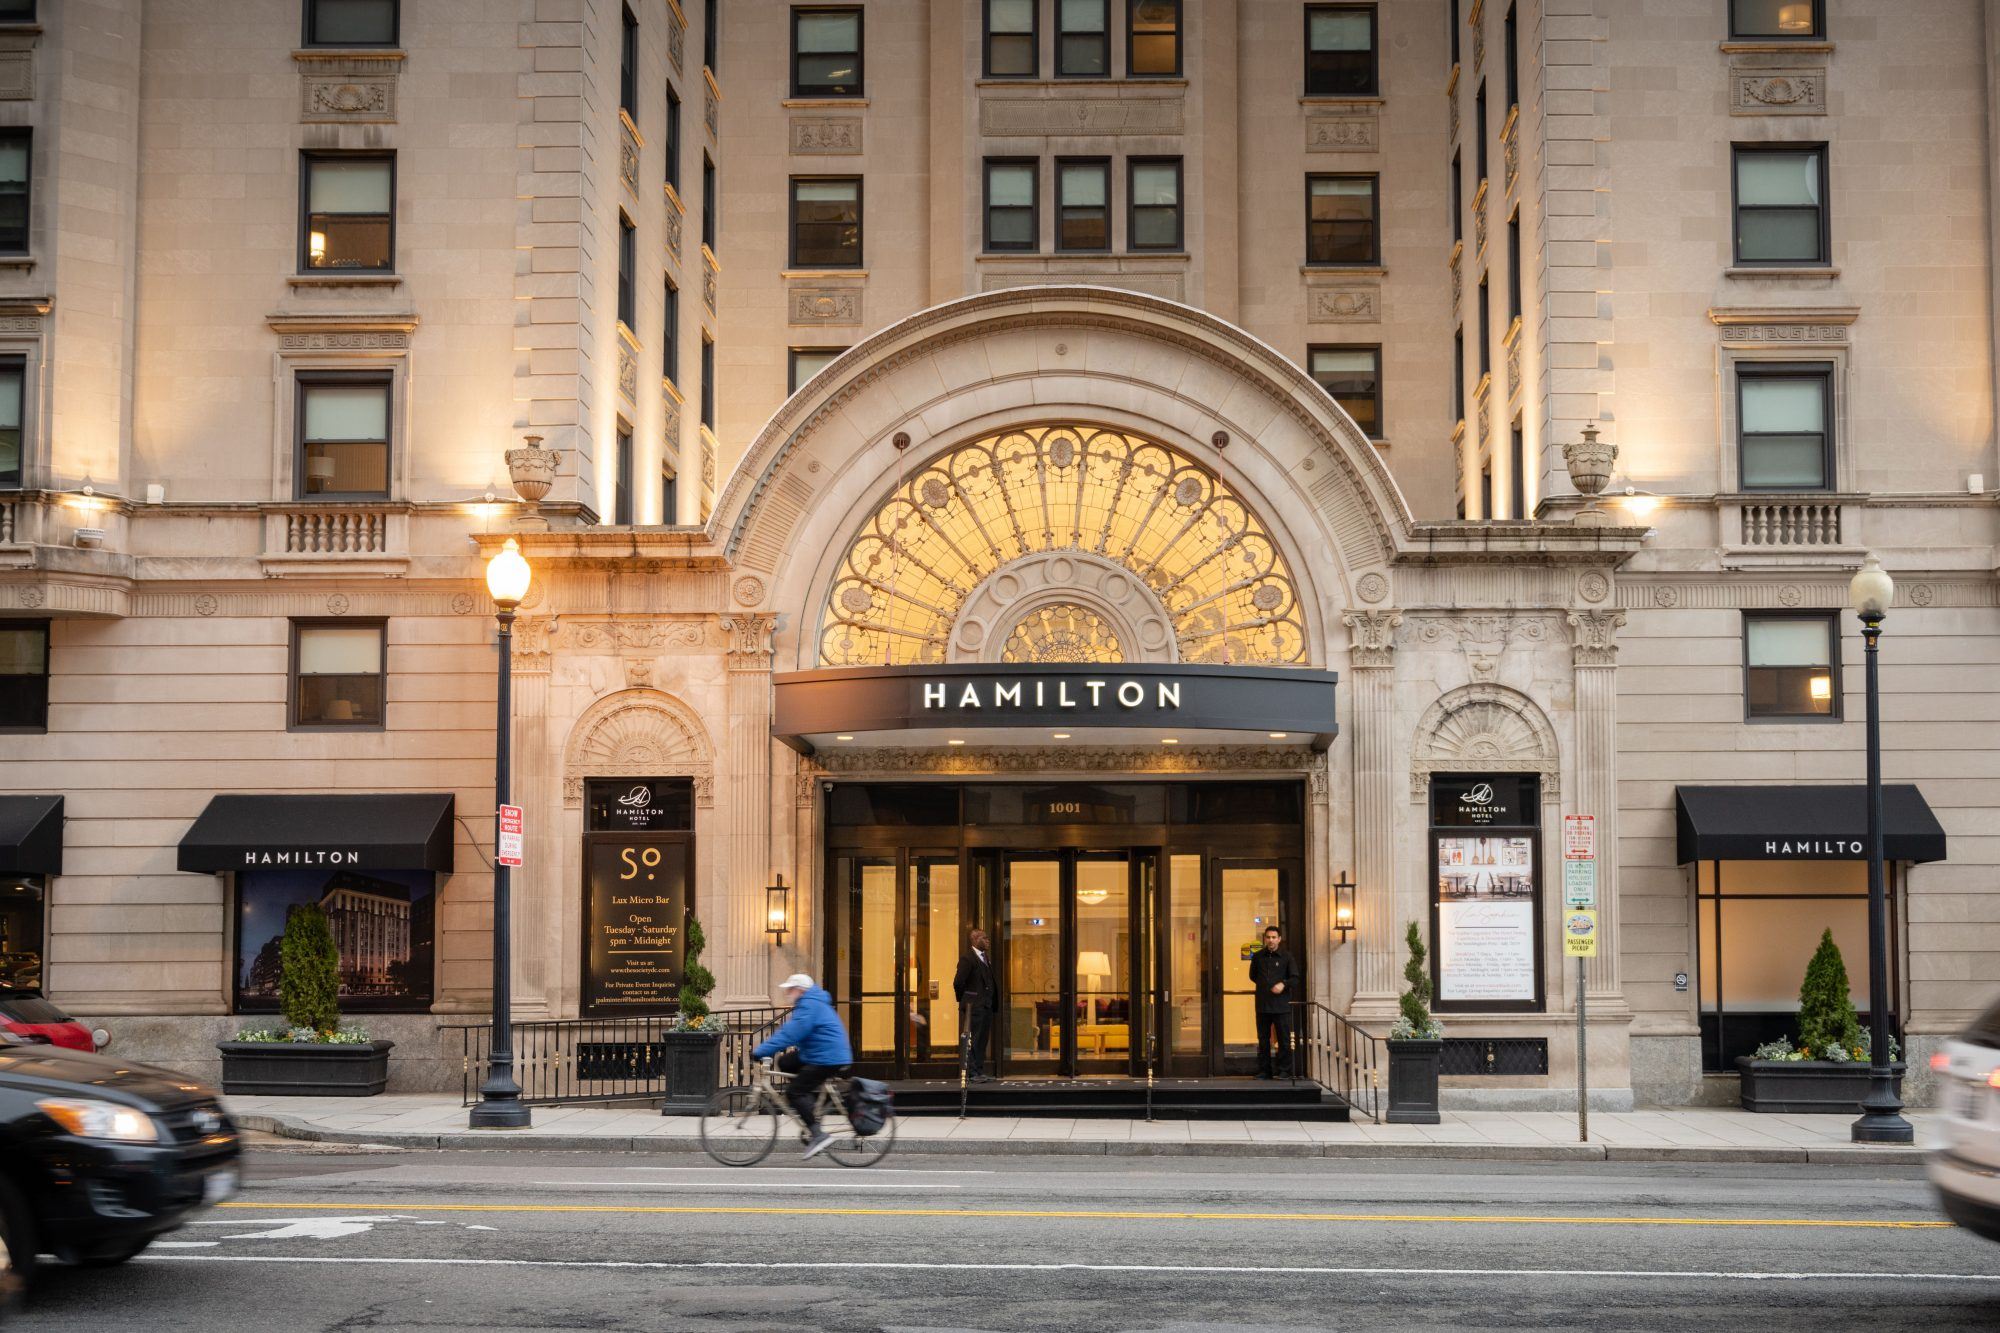 The Hamilton Hotel in Washington D.C.